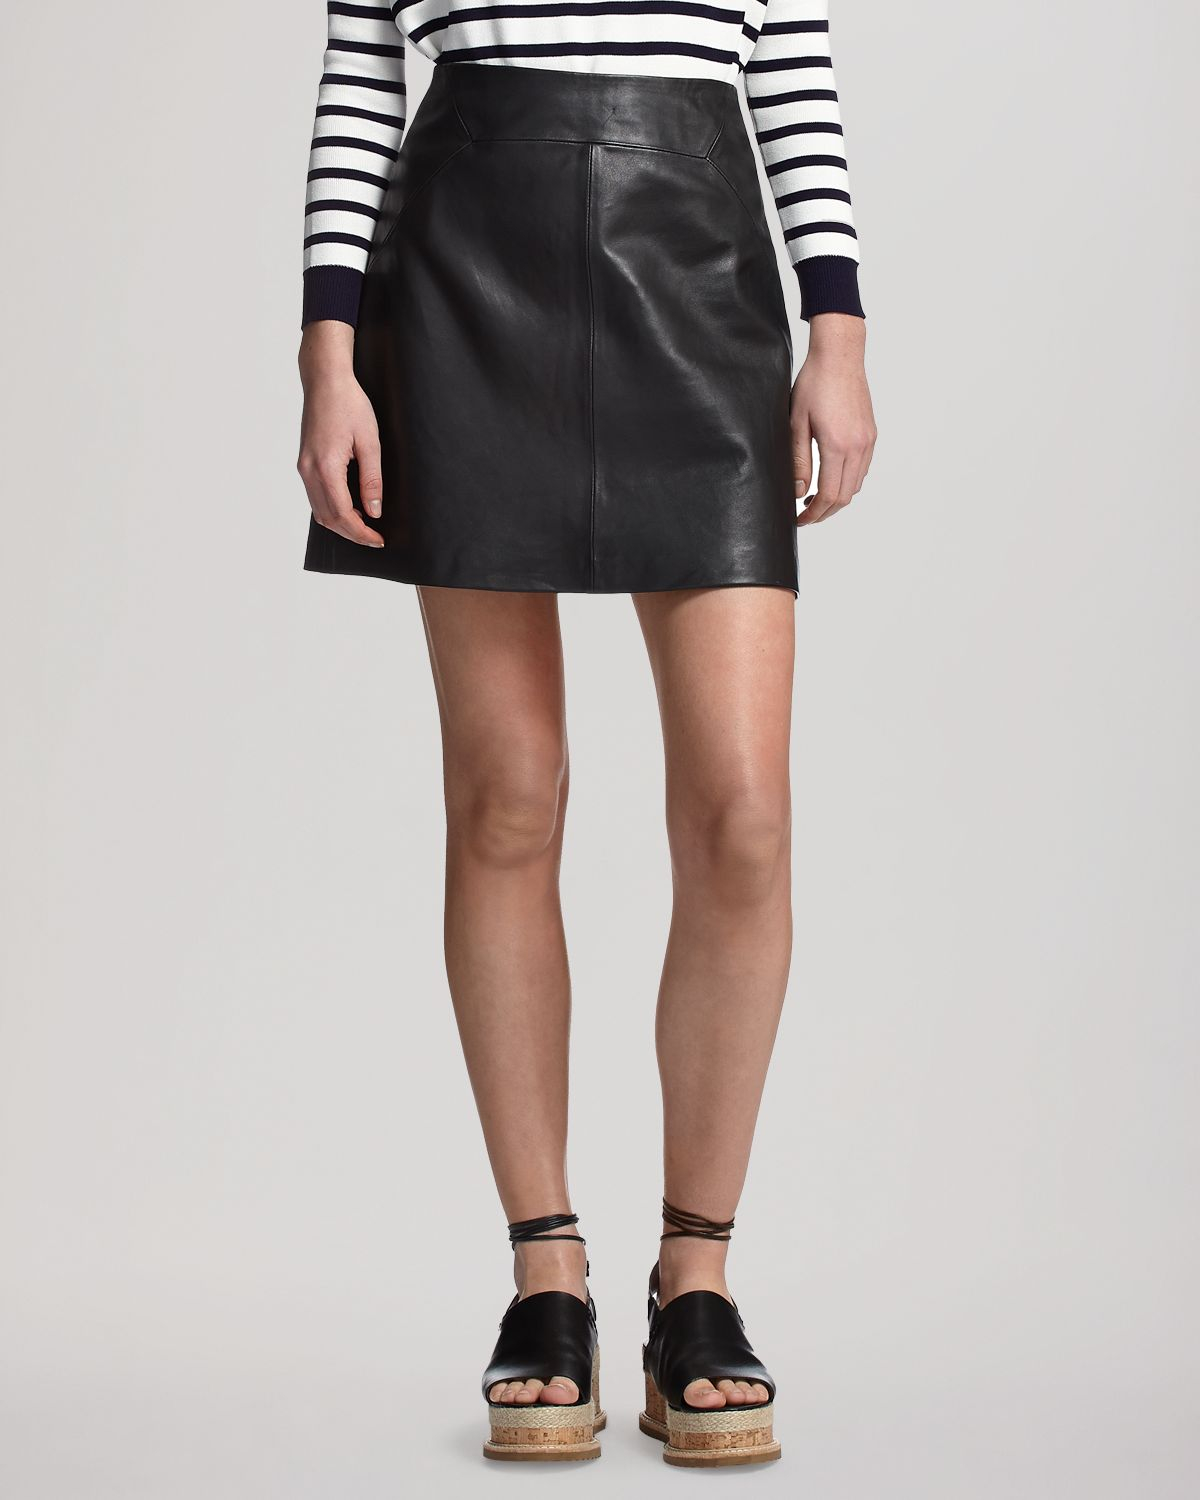 whistles skirt leather mini in black lyst